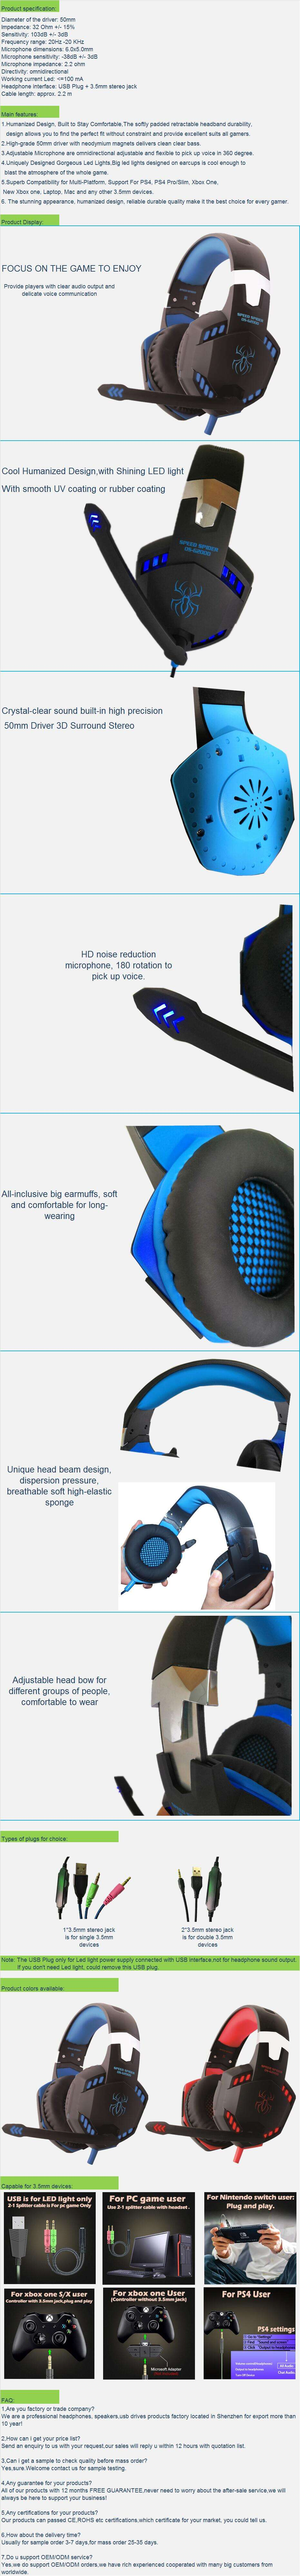 2019 Best Seller Hot Popular High-end Pro Gaming Headphones PS4 Stereo Headset with Microphone for Playstation 4 (G2000)